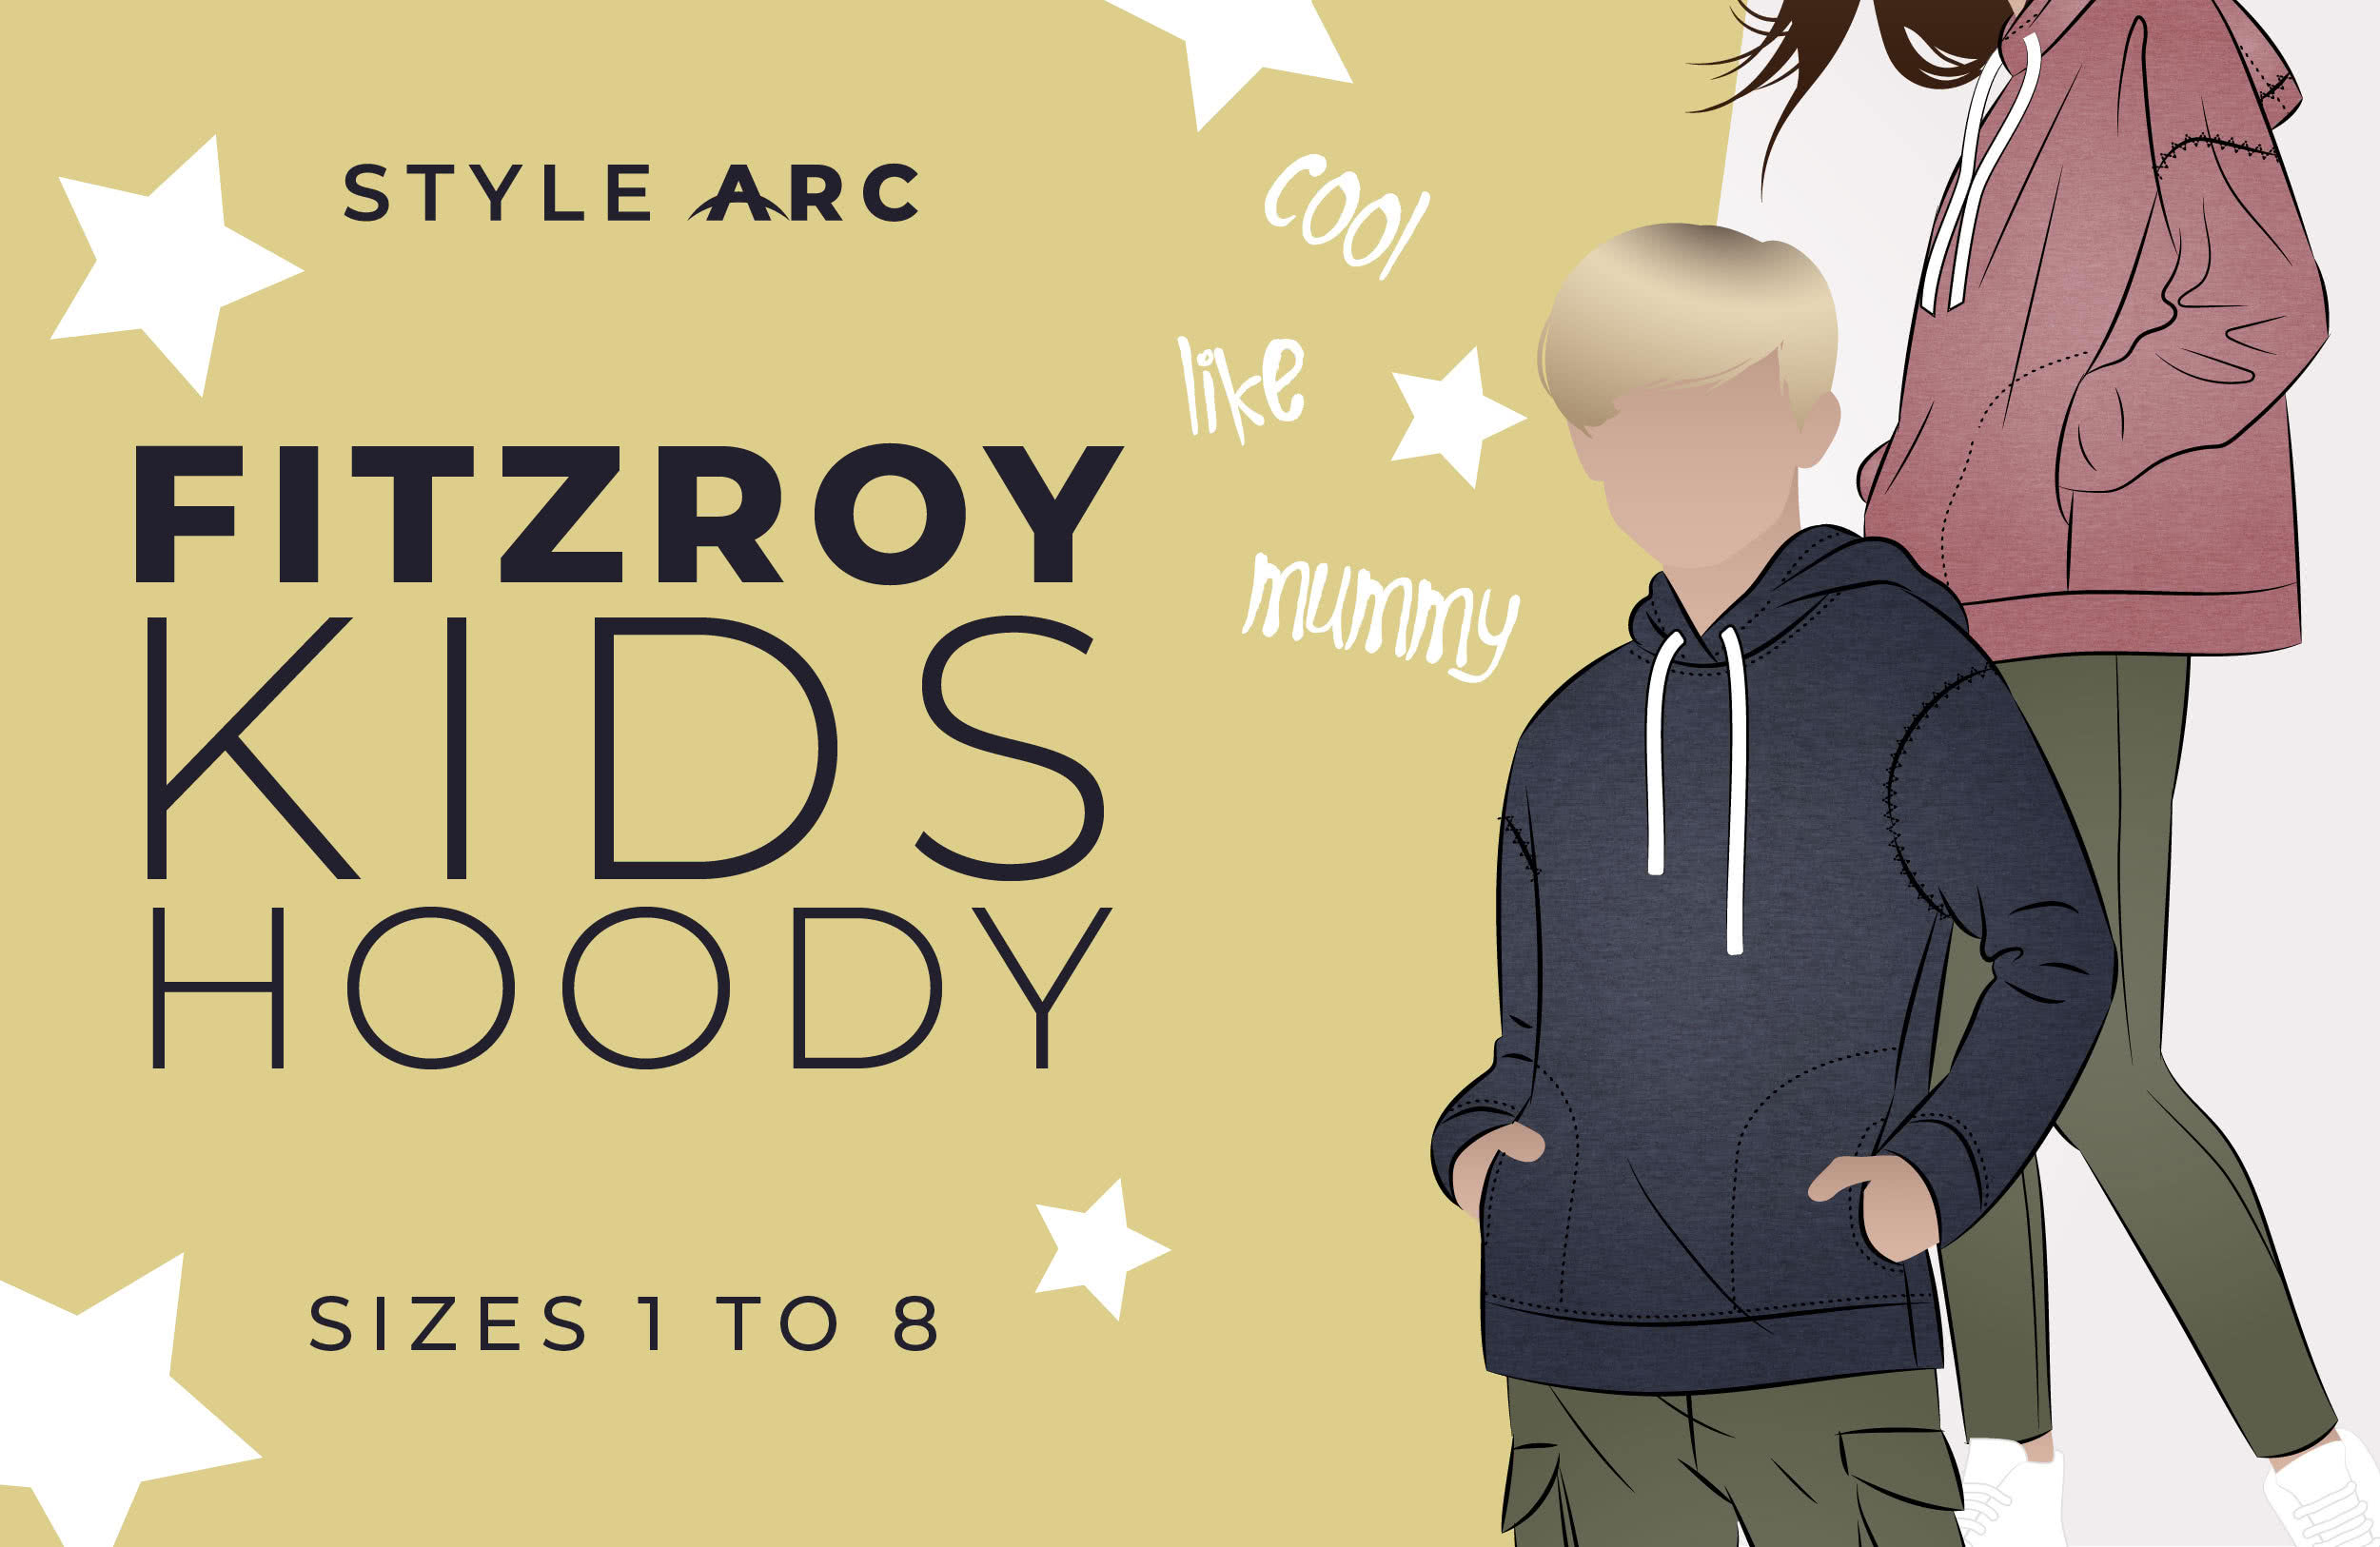 Fitzroy Kids Hoody - Available in sizes 1-8